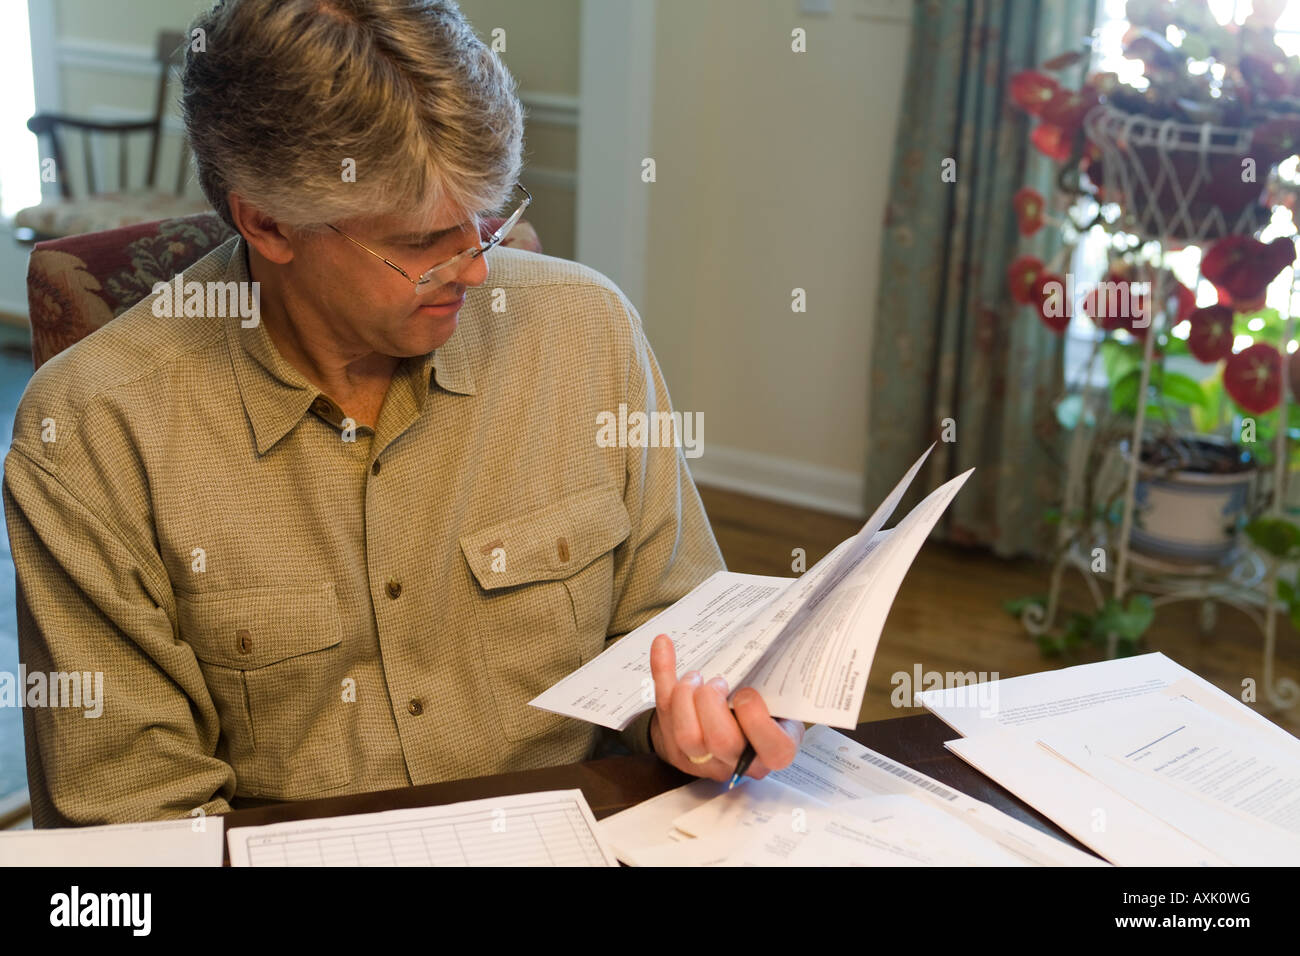 ILLINOIS Riverwoods Adult male reviewing forms for income